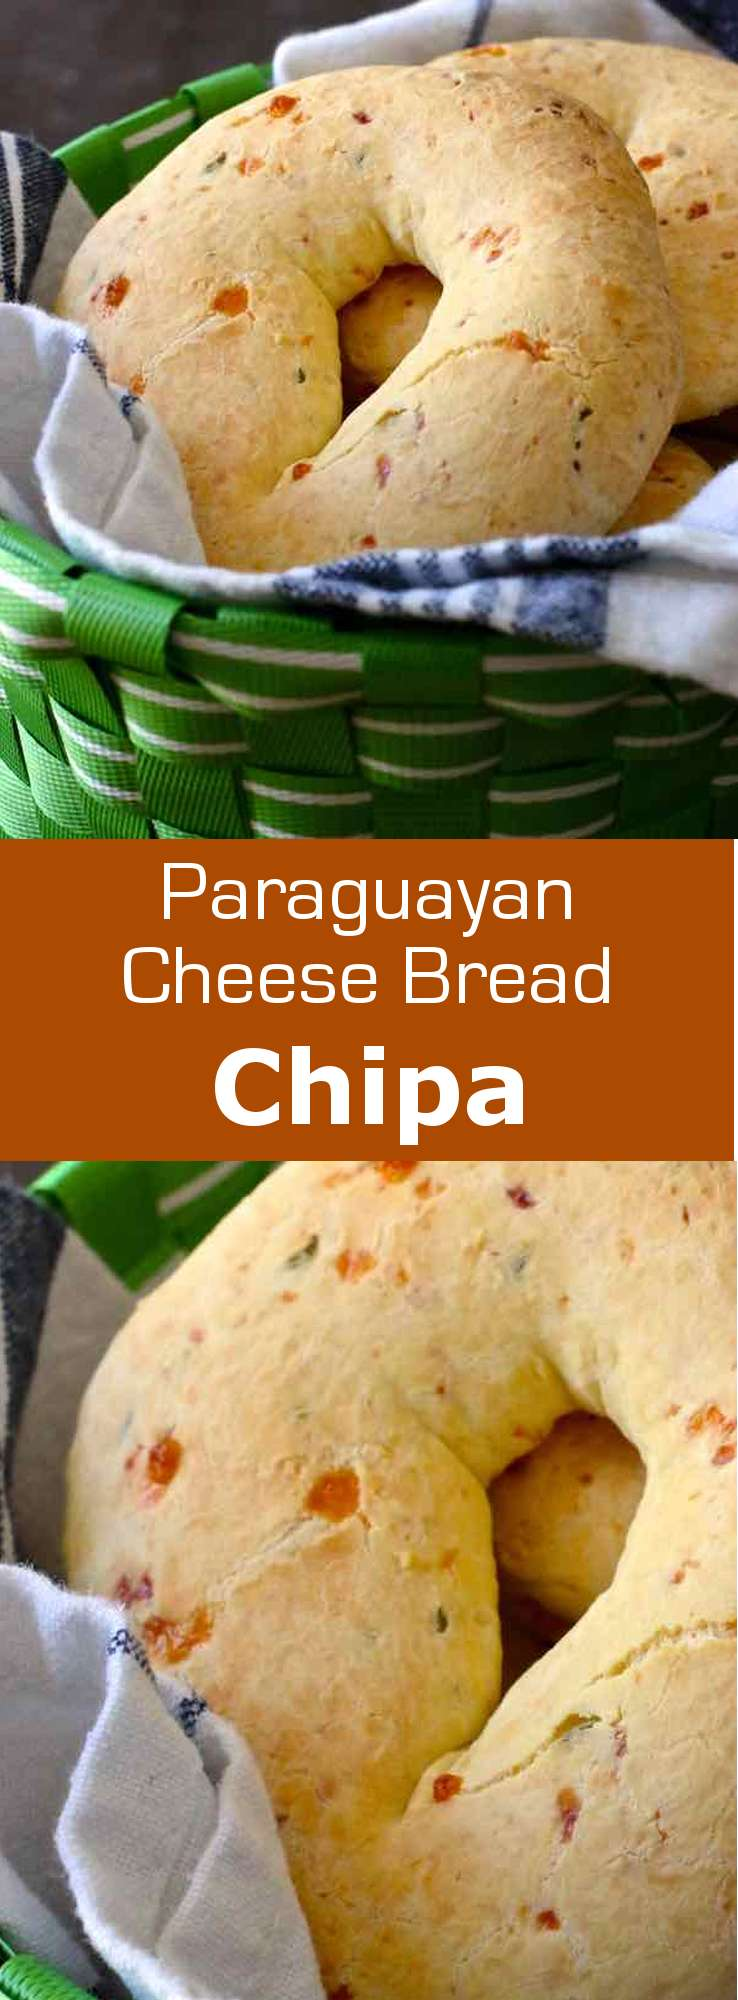 Chipa is a small traditional cheese bread from Paraguay, which is especially consumed during the Holy Week before Easter. #Easter #Paraguay #Bread #196flavors